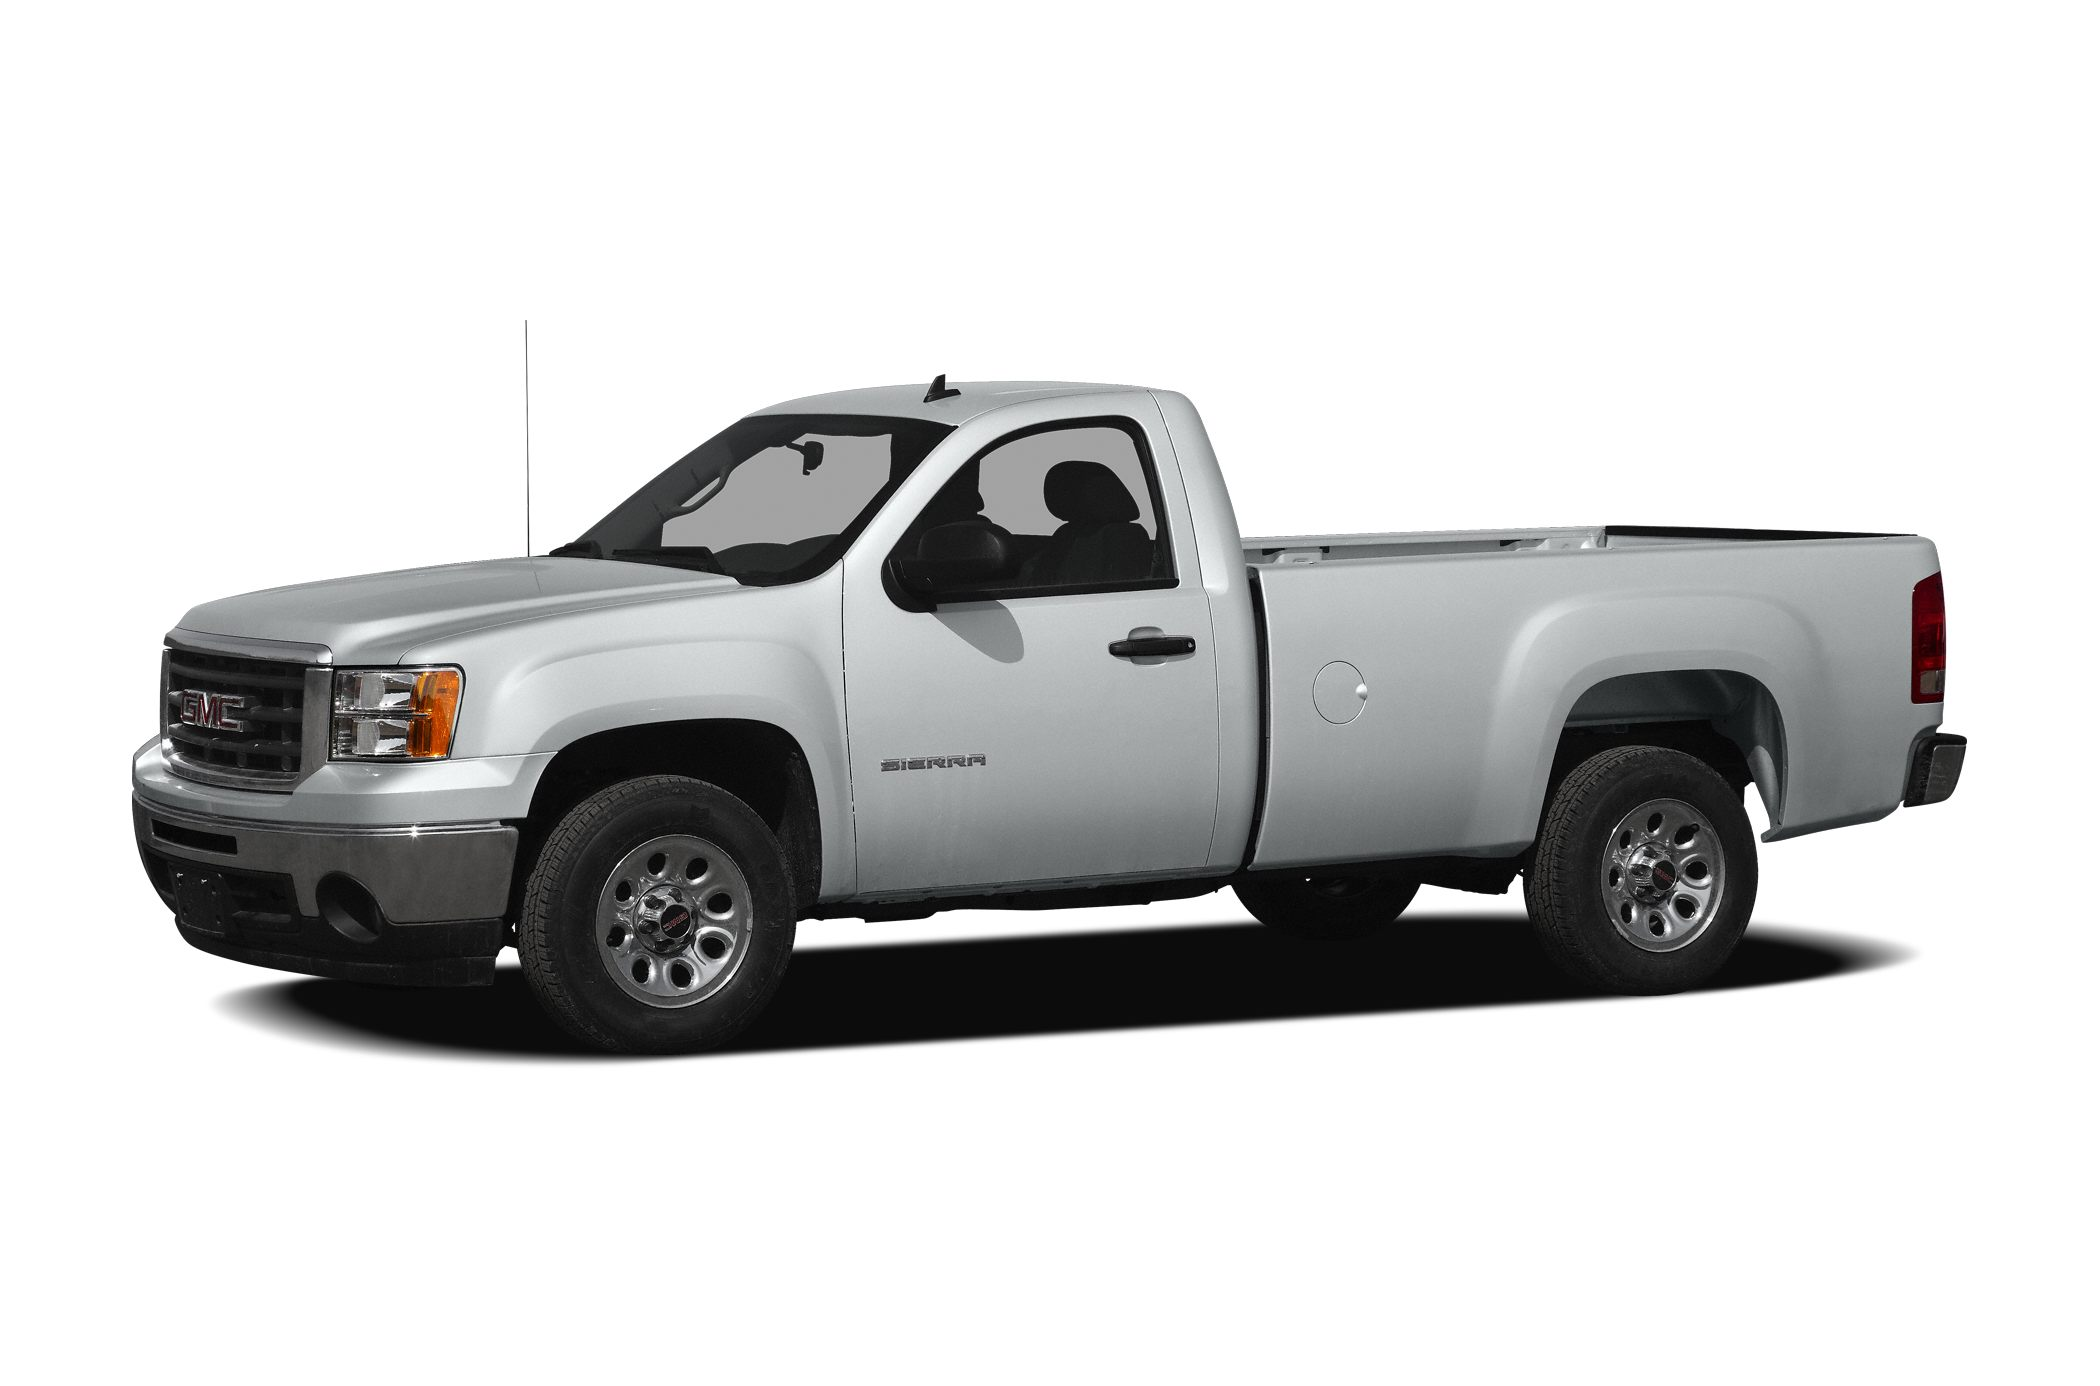 2011 GMC Sierra 1500 SLE Crew Cab Pickup for sale in Mabank for $30,124 with 76,487 miles